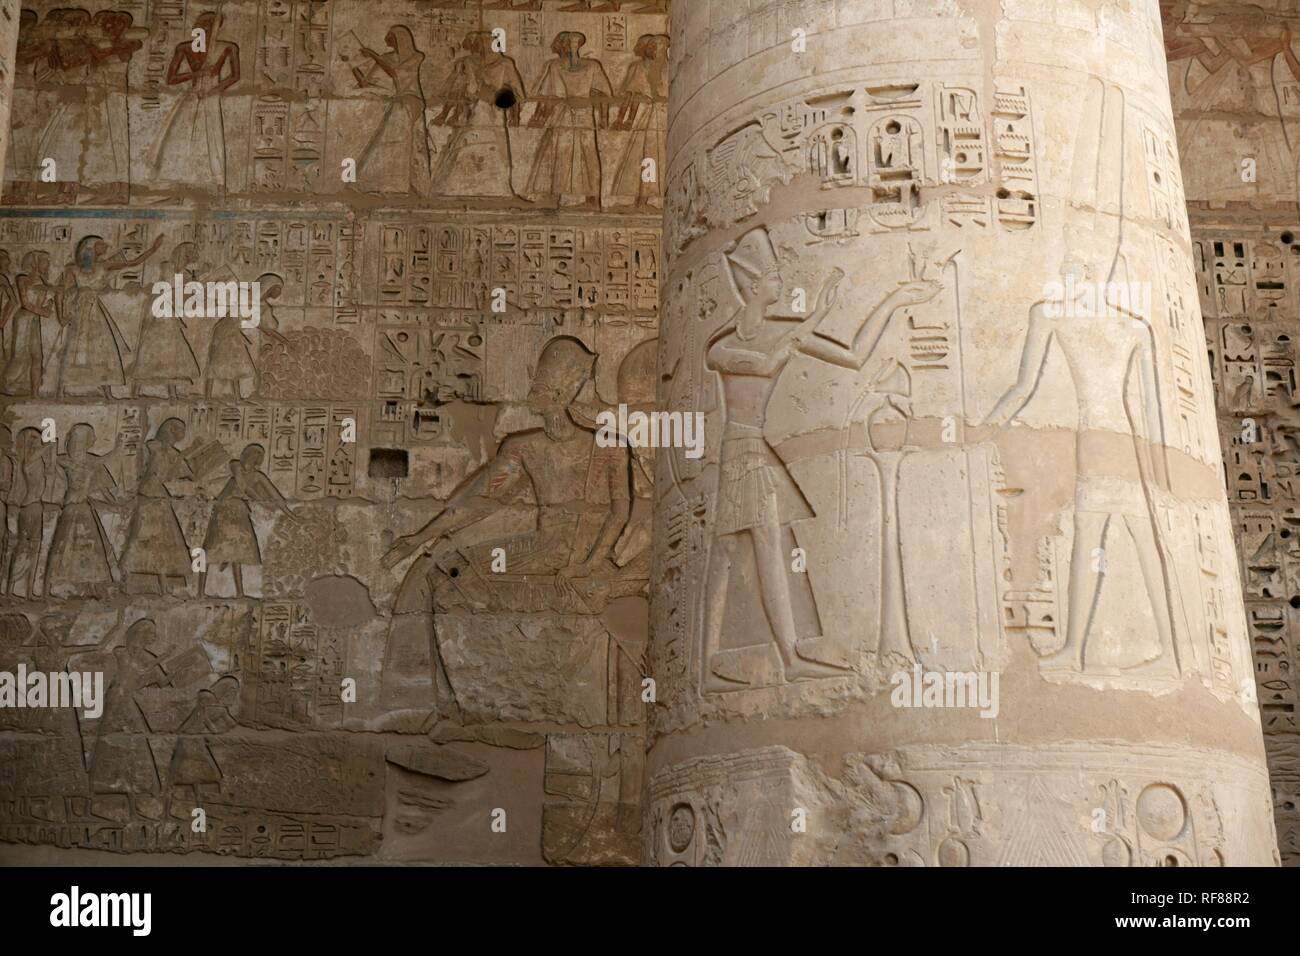 Hieroglyphs, Medinet Habu, Mortuary Temple of Ramesses III, West Thebes, Luxor, Egypt, Africa Stock Photo